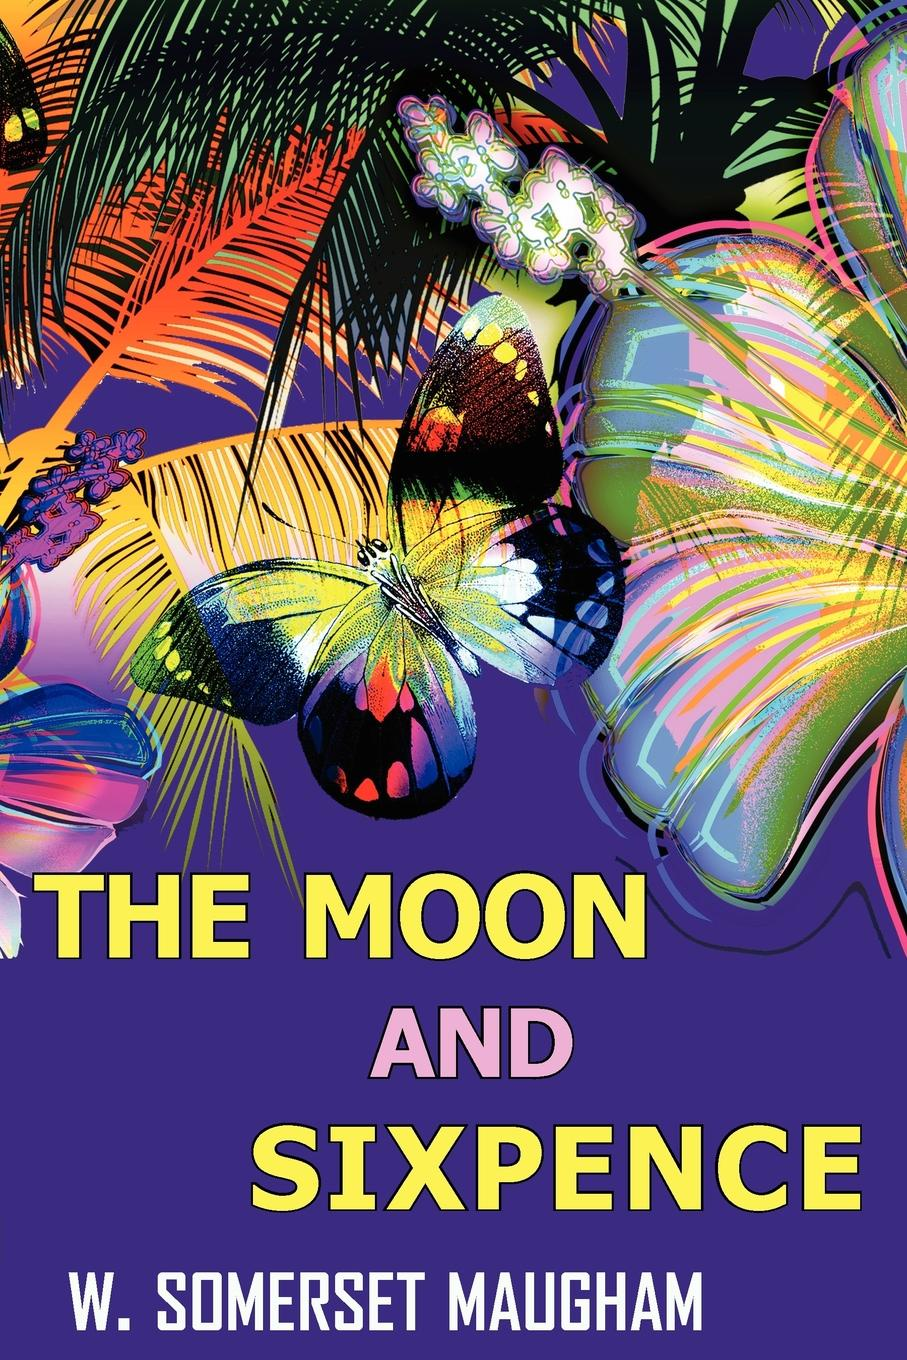 W. Somerset Maugham The Moon and Sixpence w somerset maugham the moon and sixpence